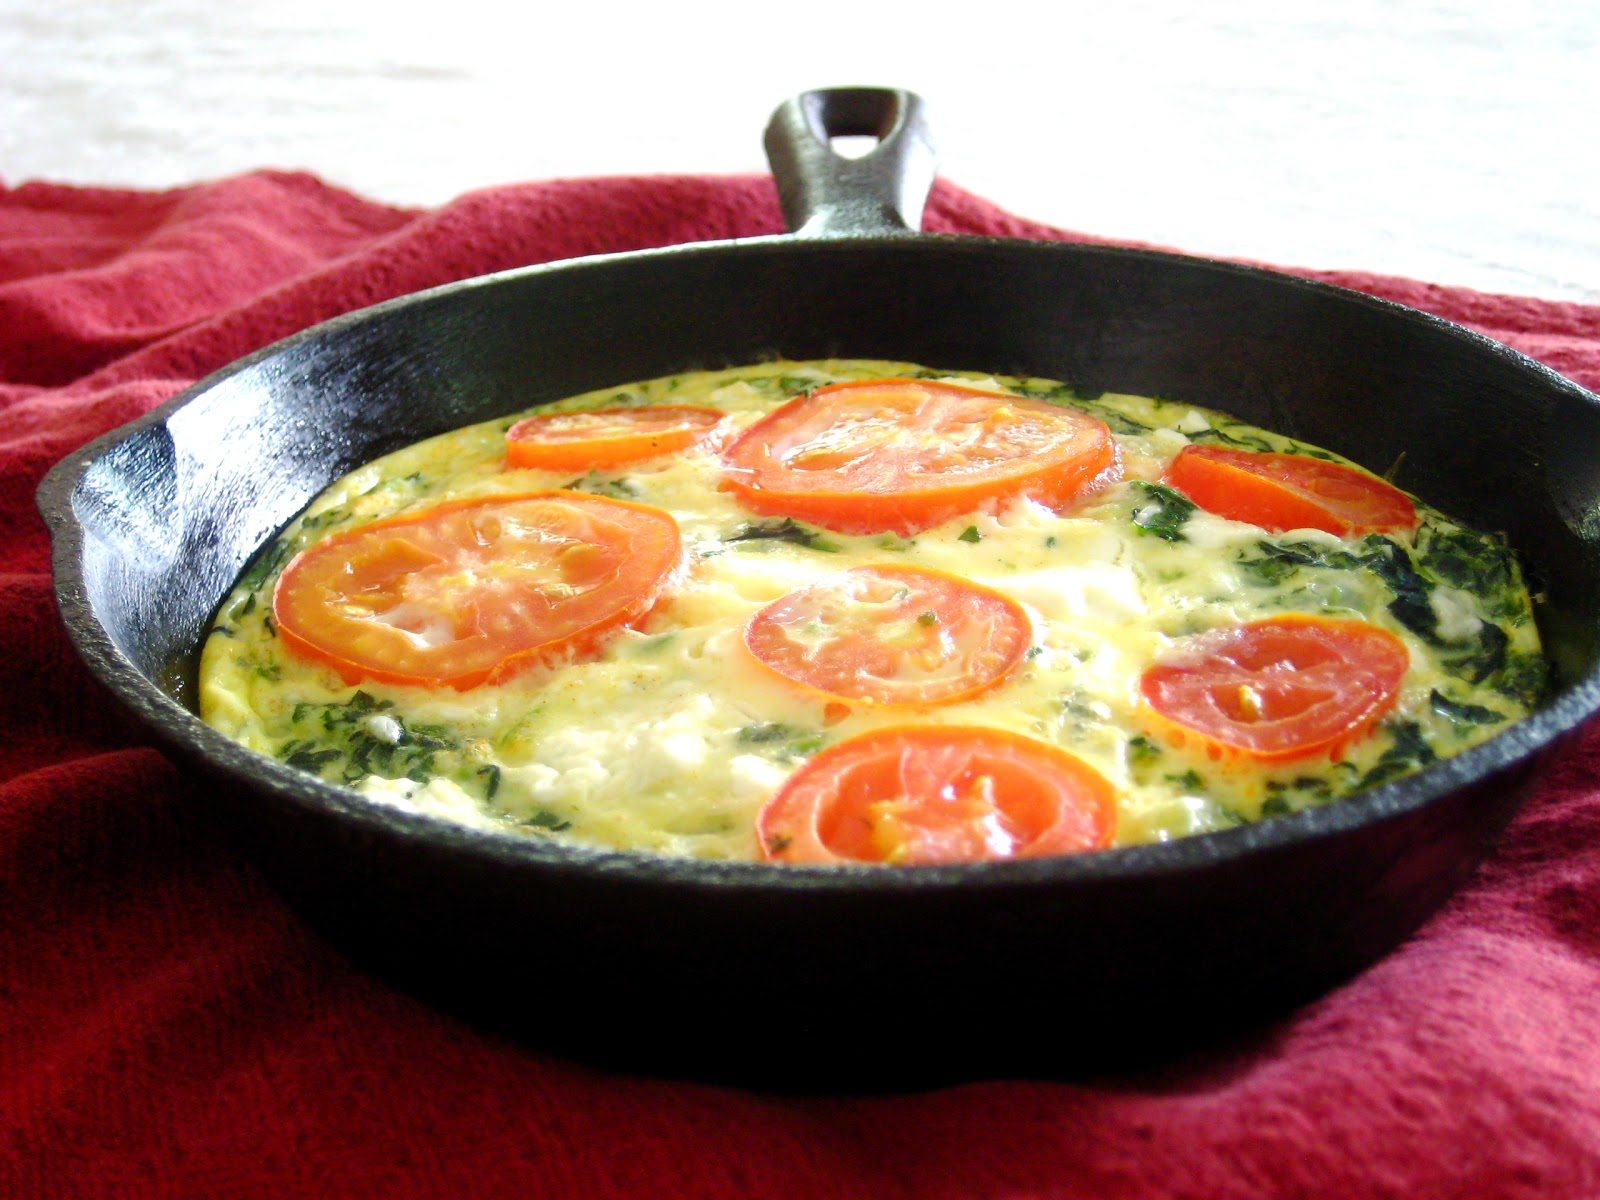 Taste and See: Leek and Spinach Frittata